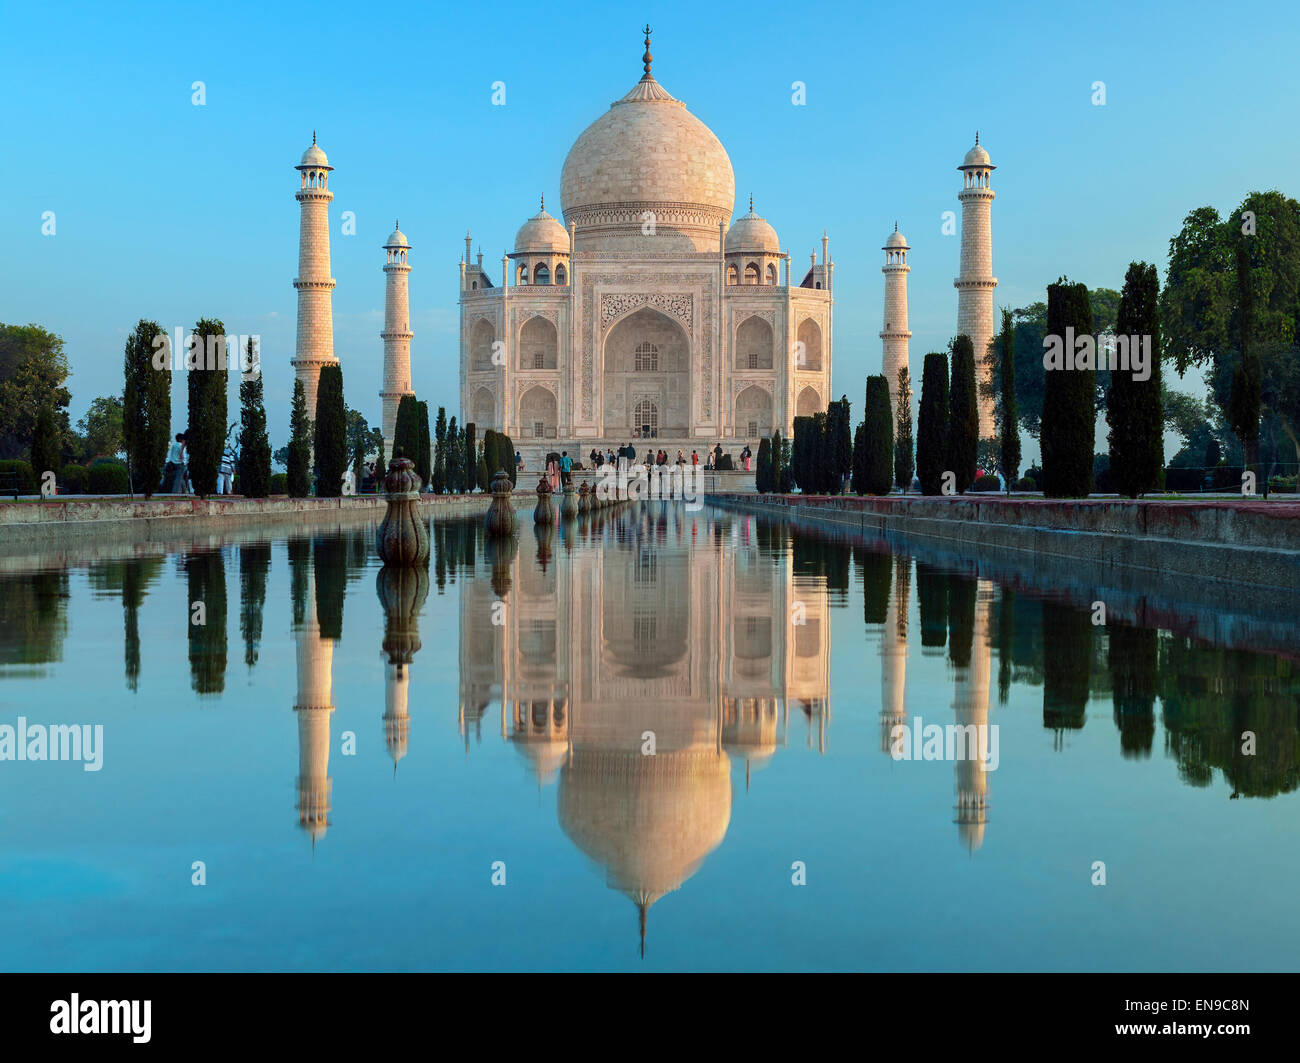 Il Taj Mahal all'alba - un mausoleo di Agra in India del nord Immagini Stock